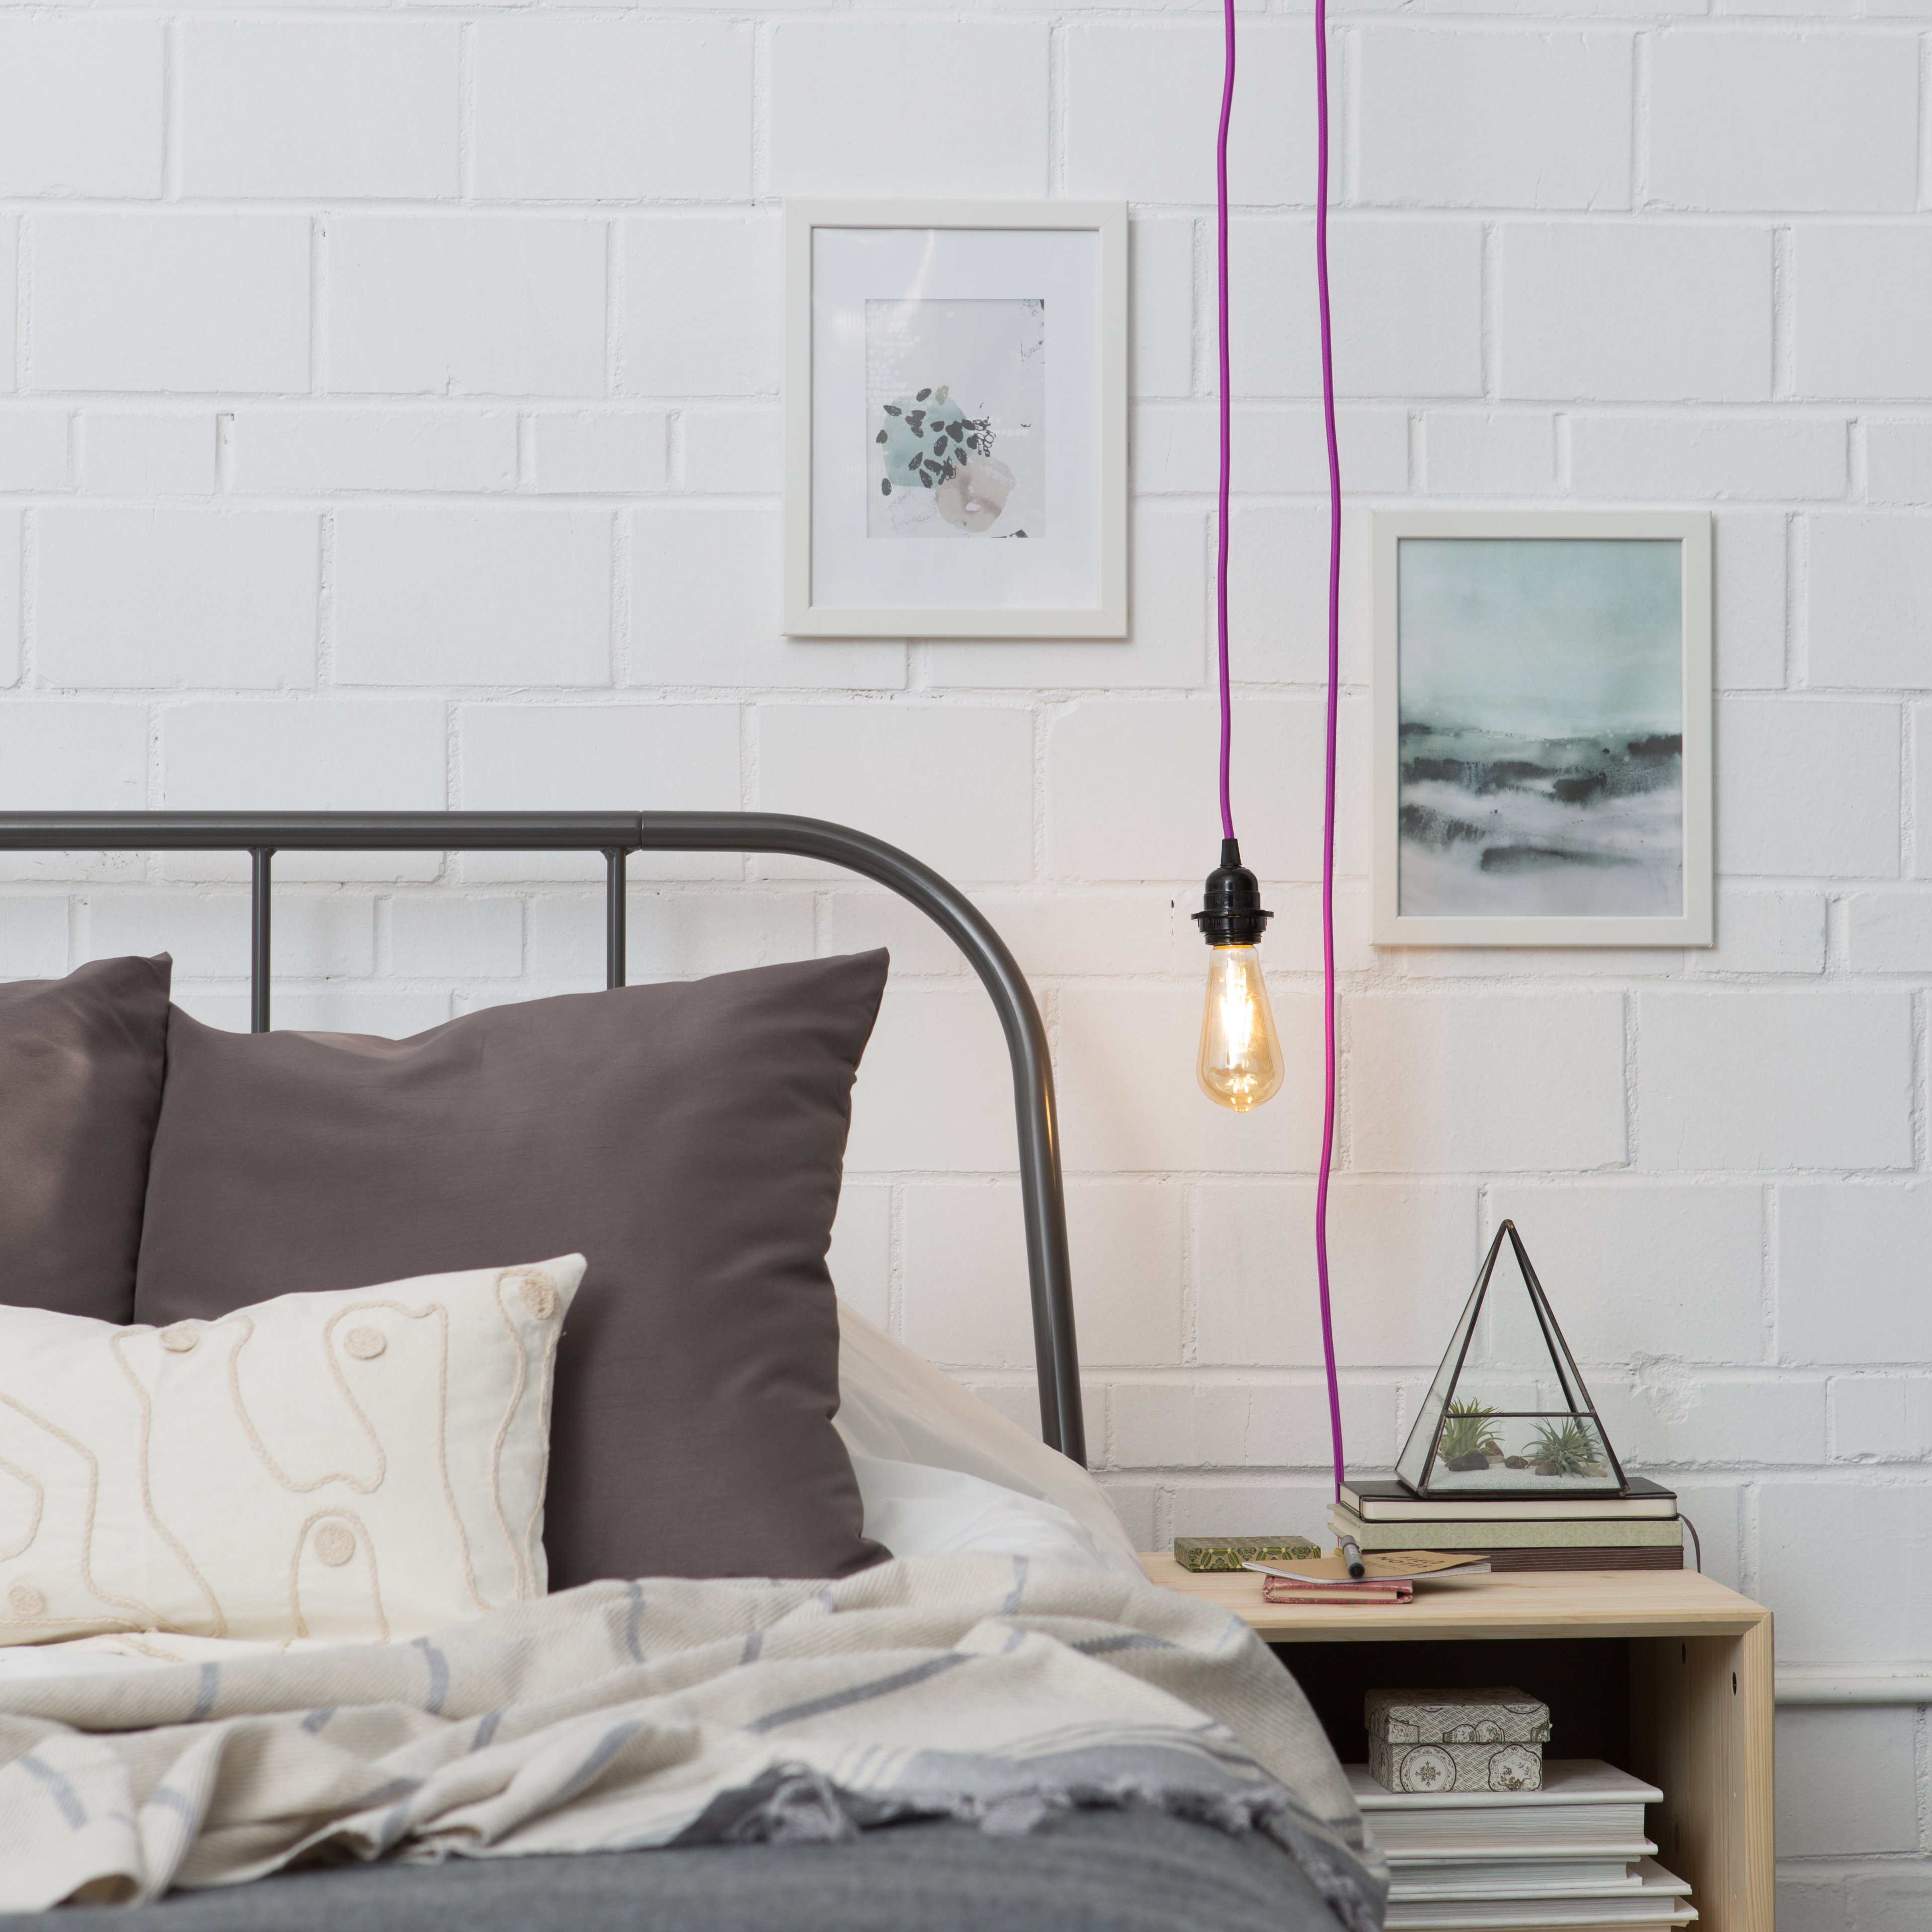 pendant lighting bedroom. Standard Plug-In Pendant Light Cord Set Lighting Bedroom